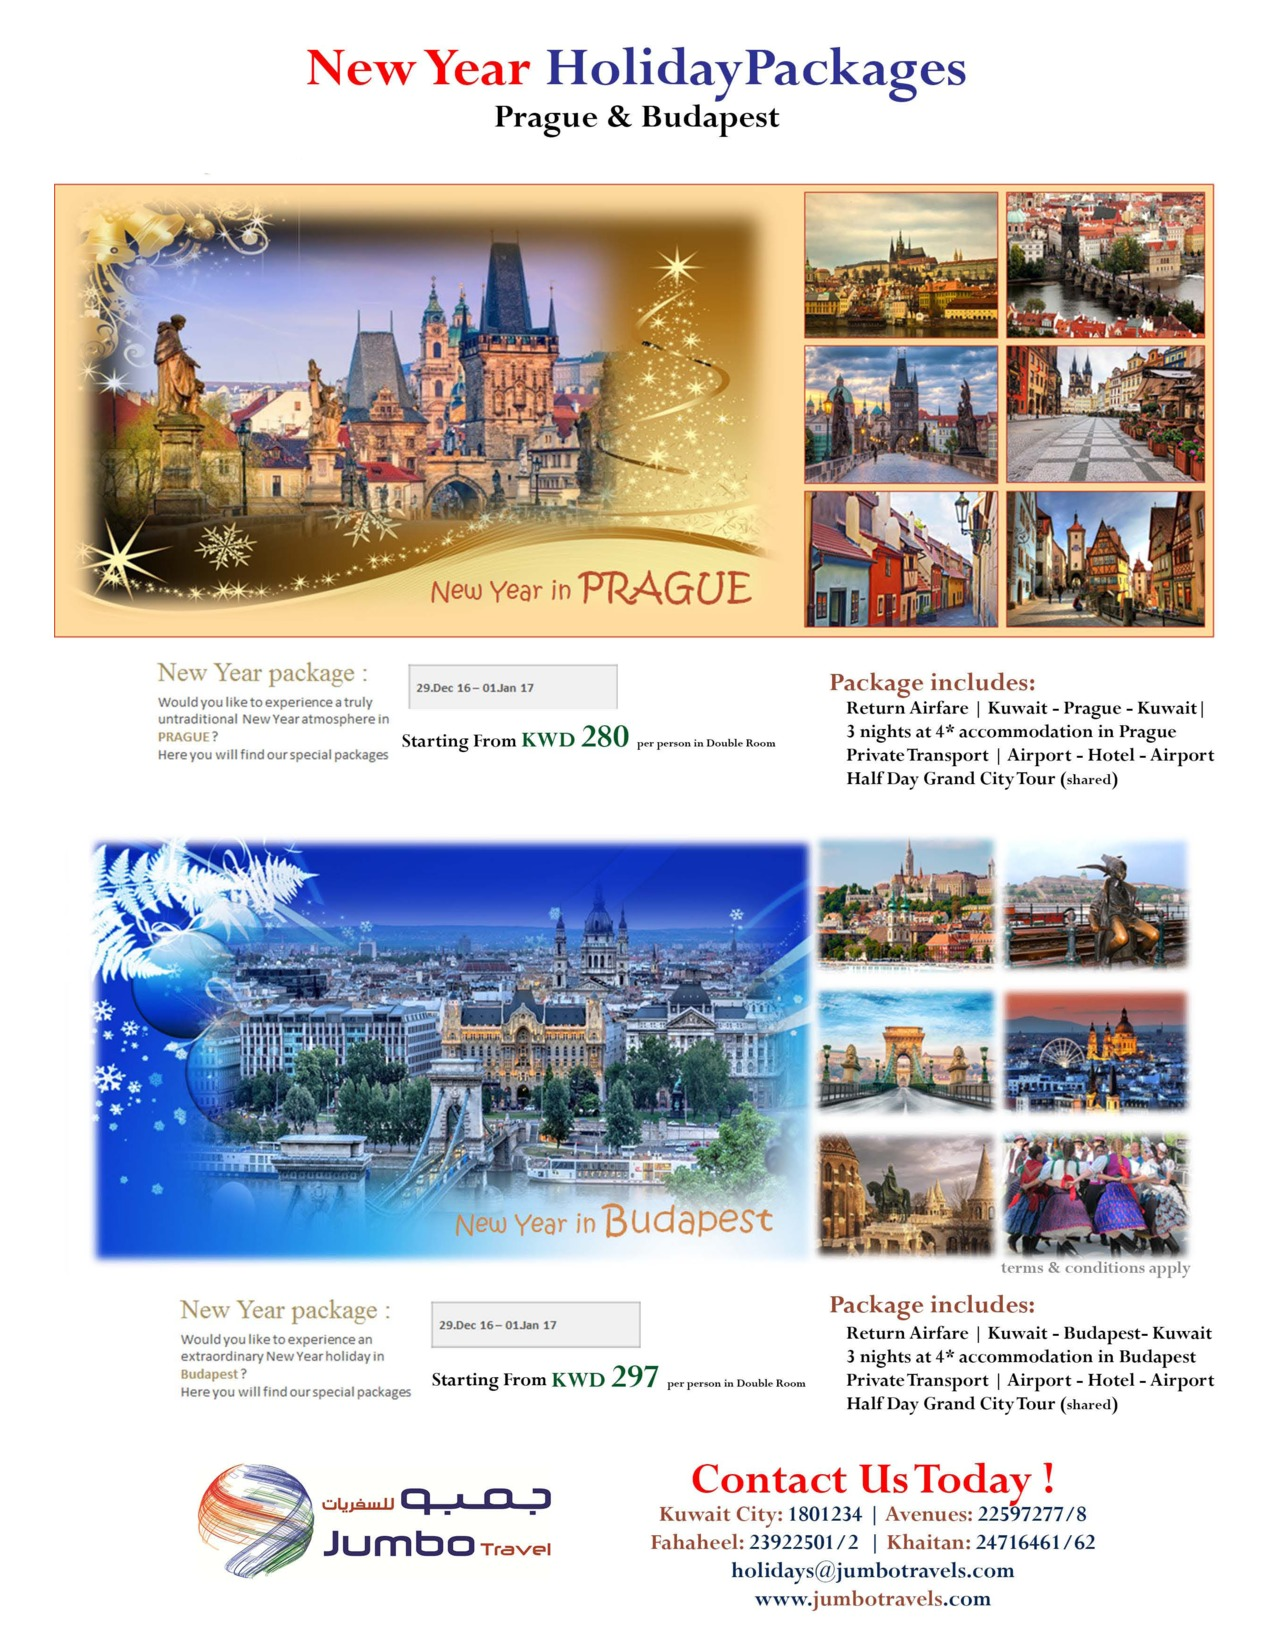 new-year-holiday-packages-kuwait